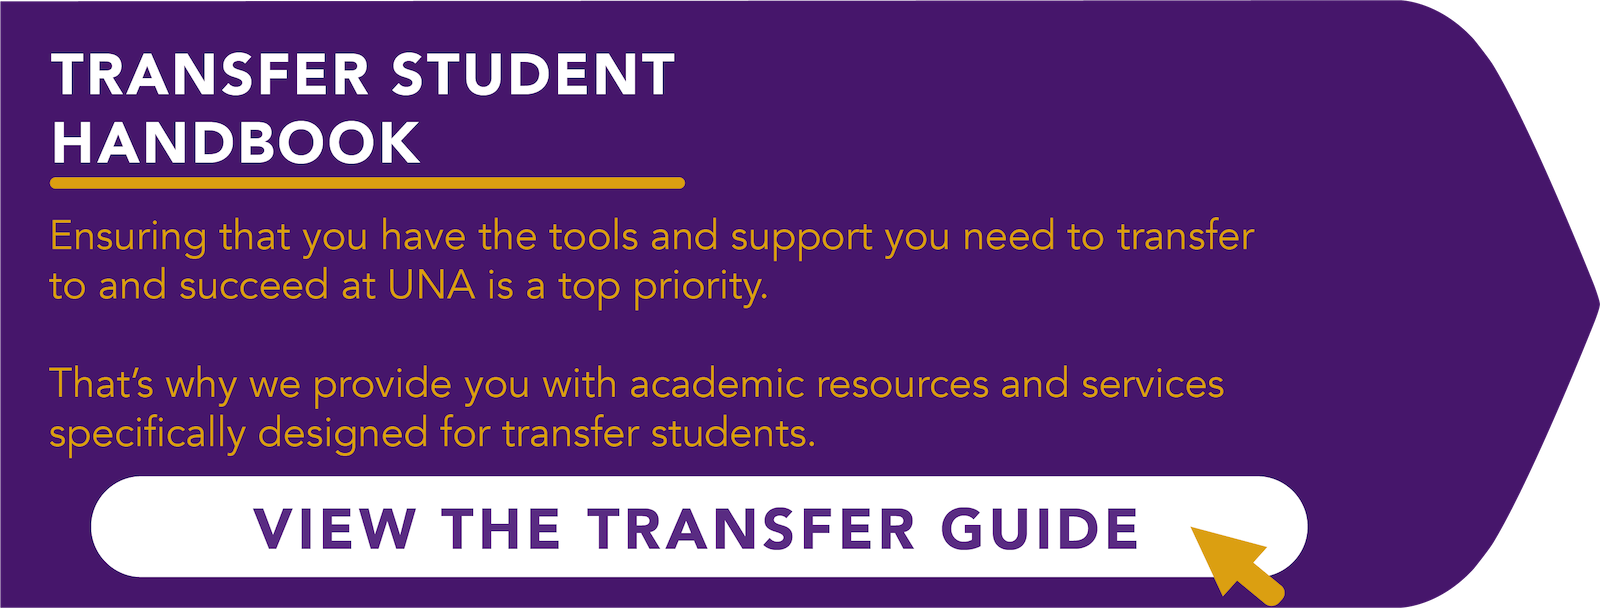 Click here to open the transfer student handbook